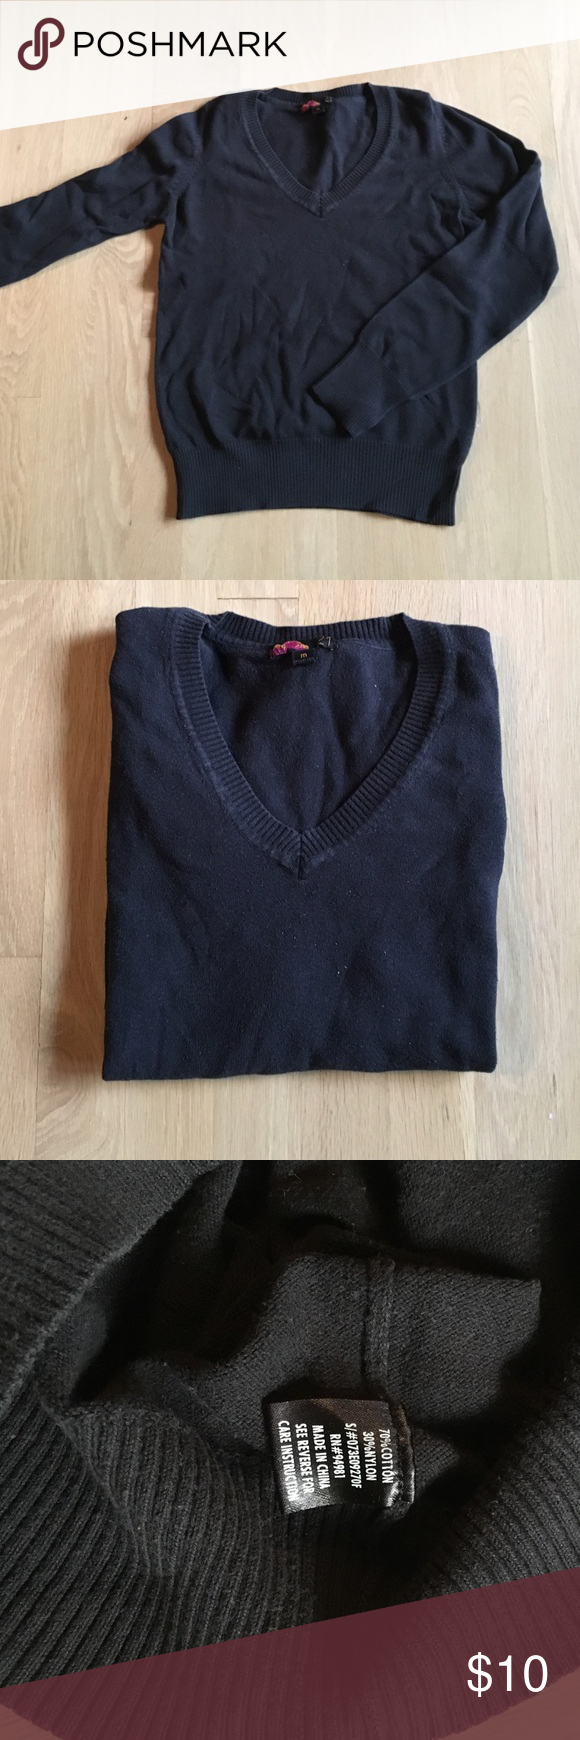 FOREVER 21 black V neck cotton/nylon sweater Plain black cotton/nylon black sweater. Super comfortable and perfect for fall/winter. Size M but could fit a small very well. EUC Forever 21 Sweaters V-Necks